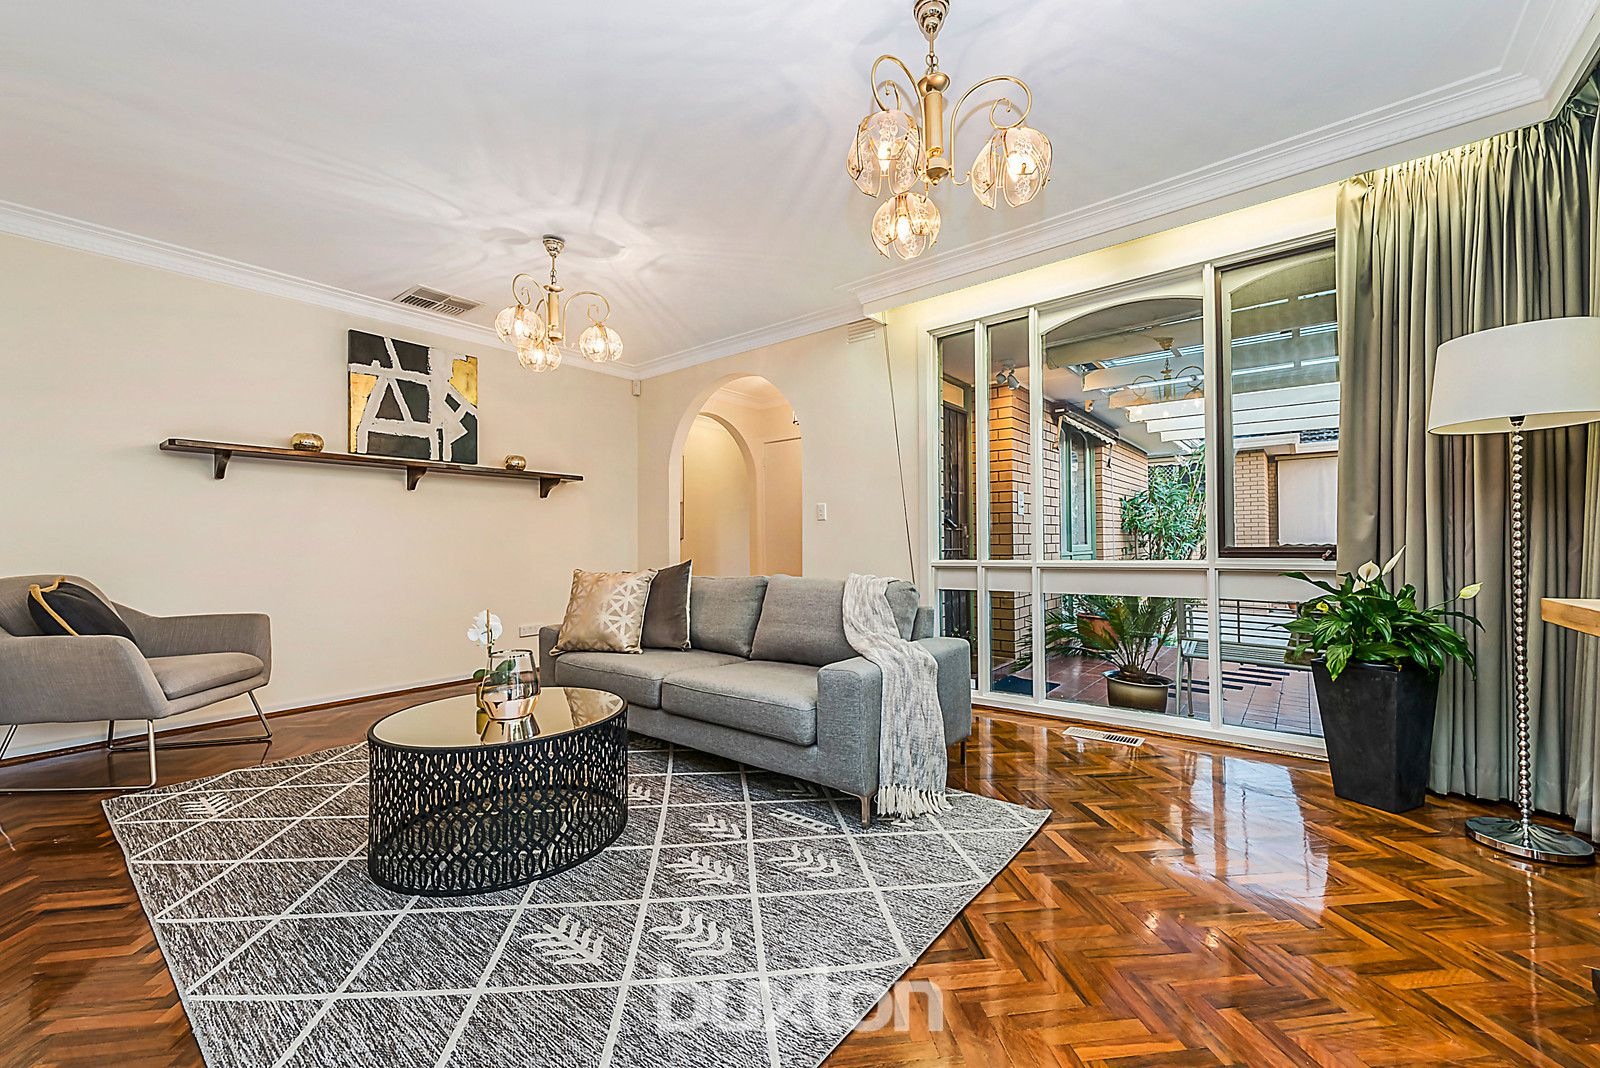 2/11 Callanish Road, Camberwell VIC 3124, Image 2